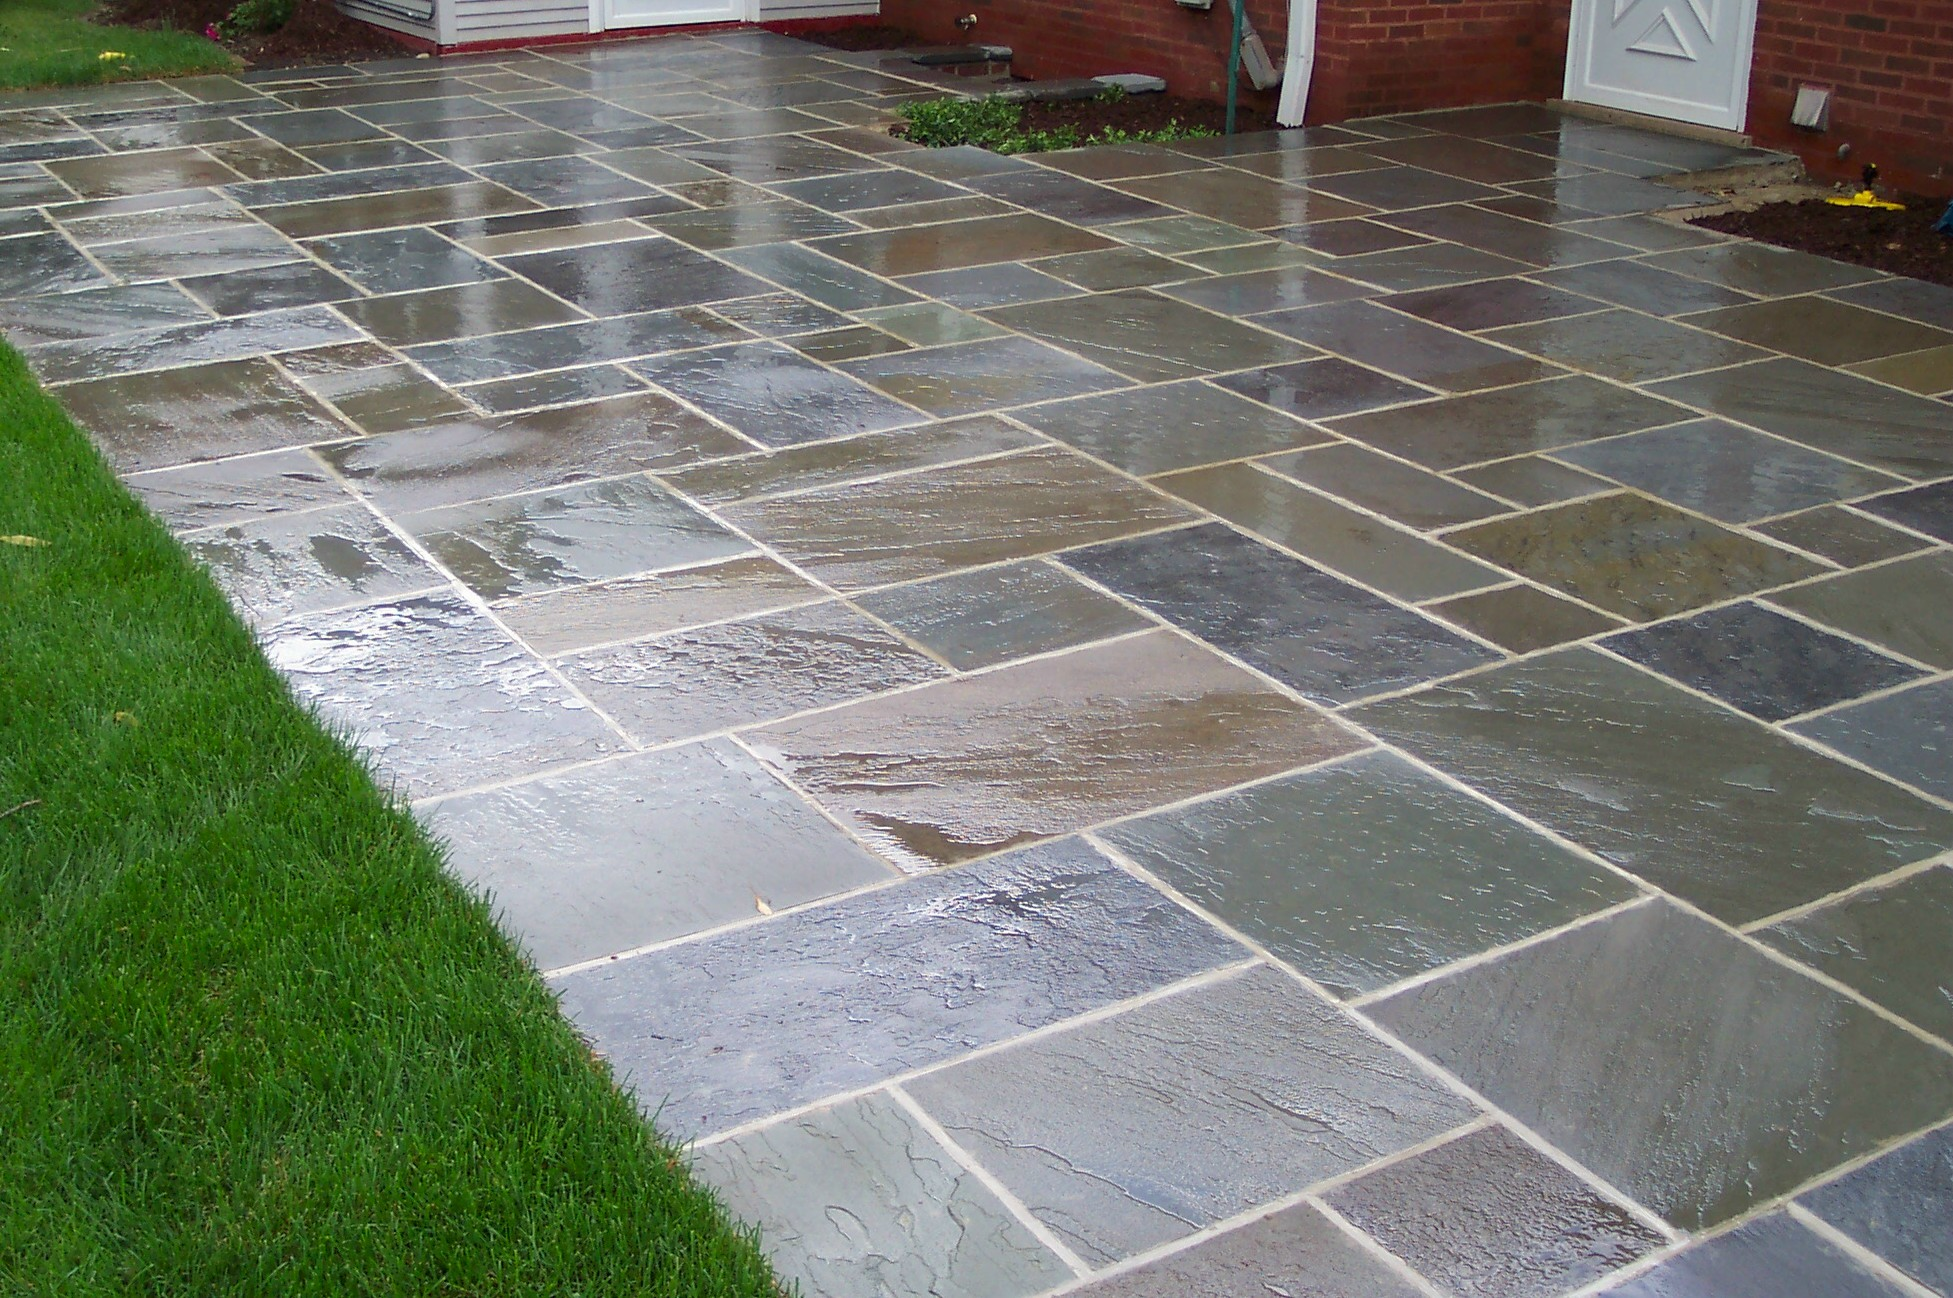 beckyard paver patio design ideas garden completed among patio ...